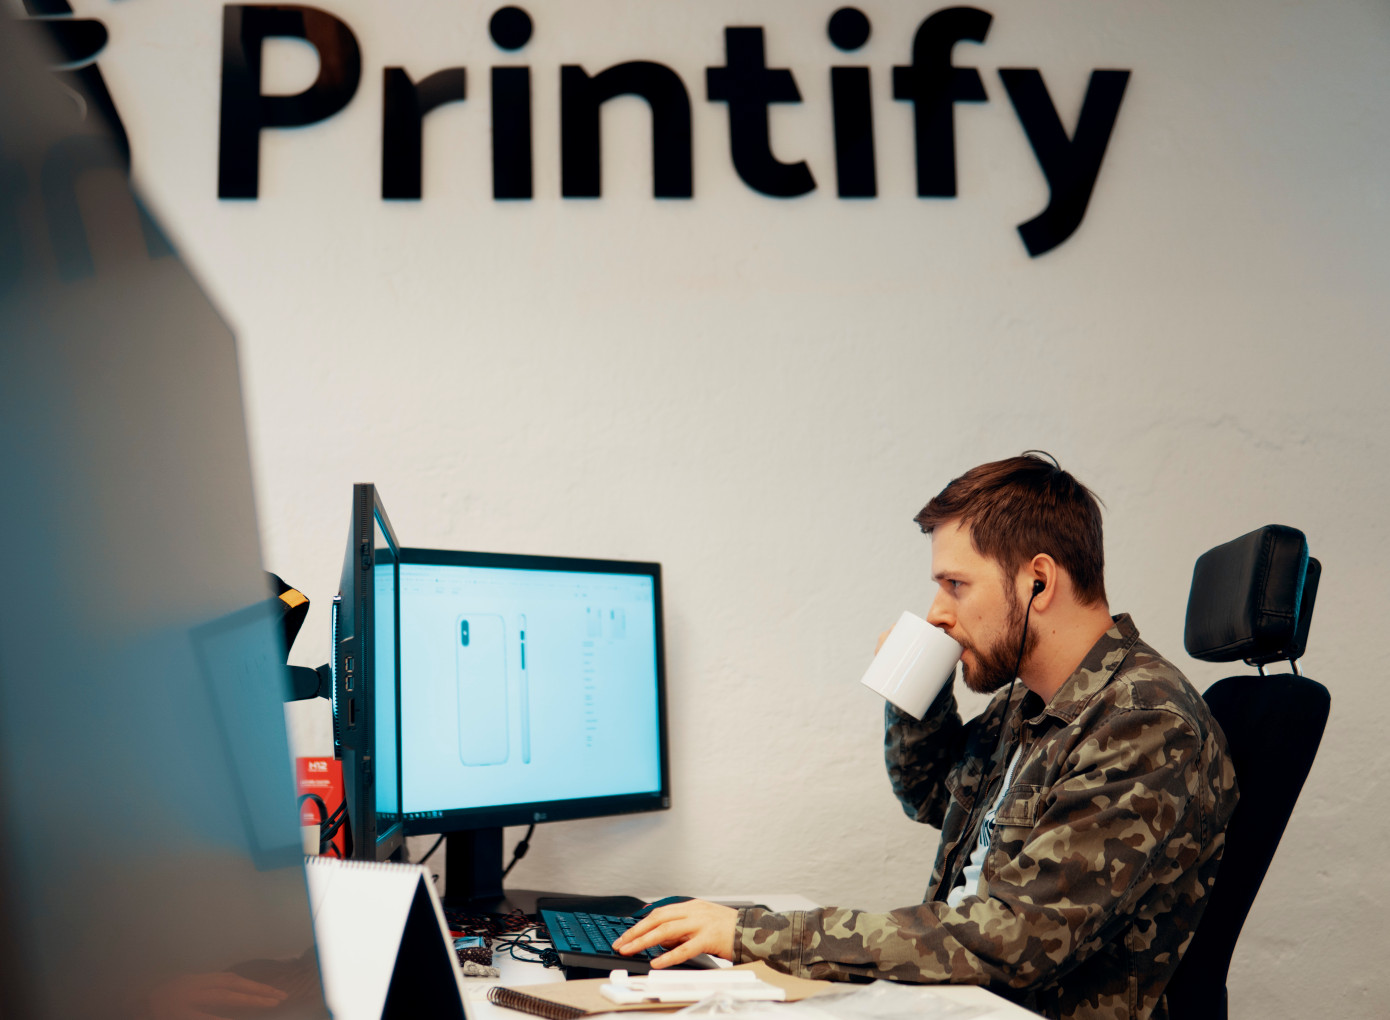 Printify to expand its marketplace from custom printing with $3 million investment